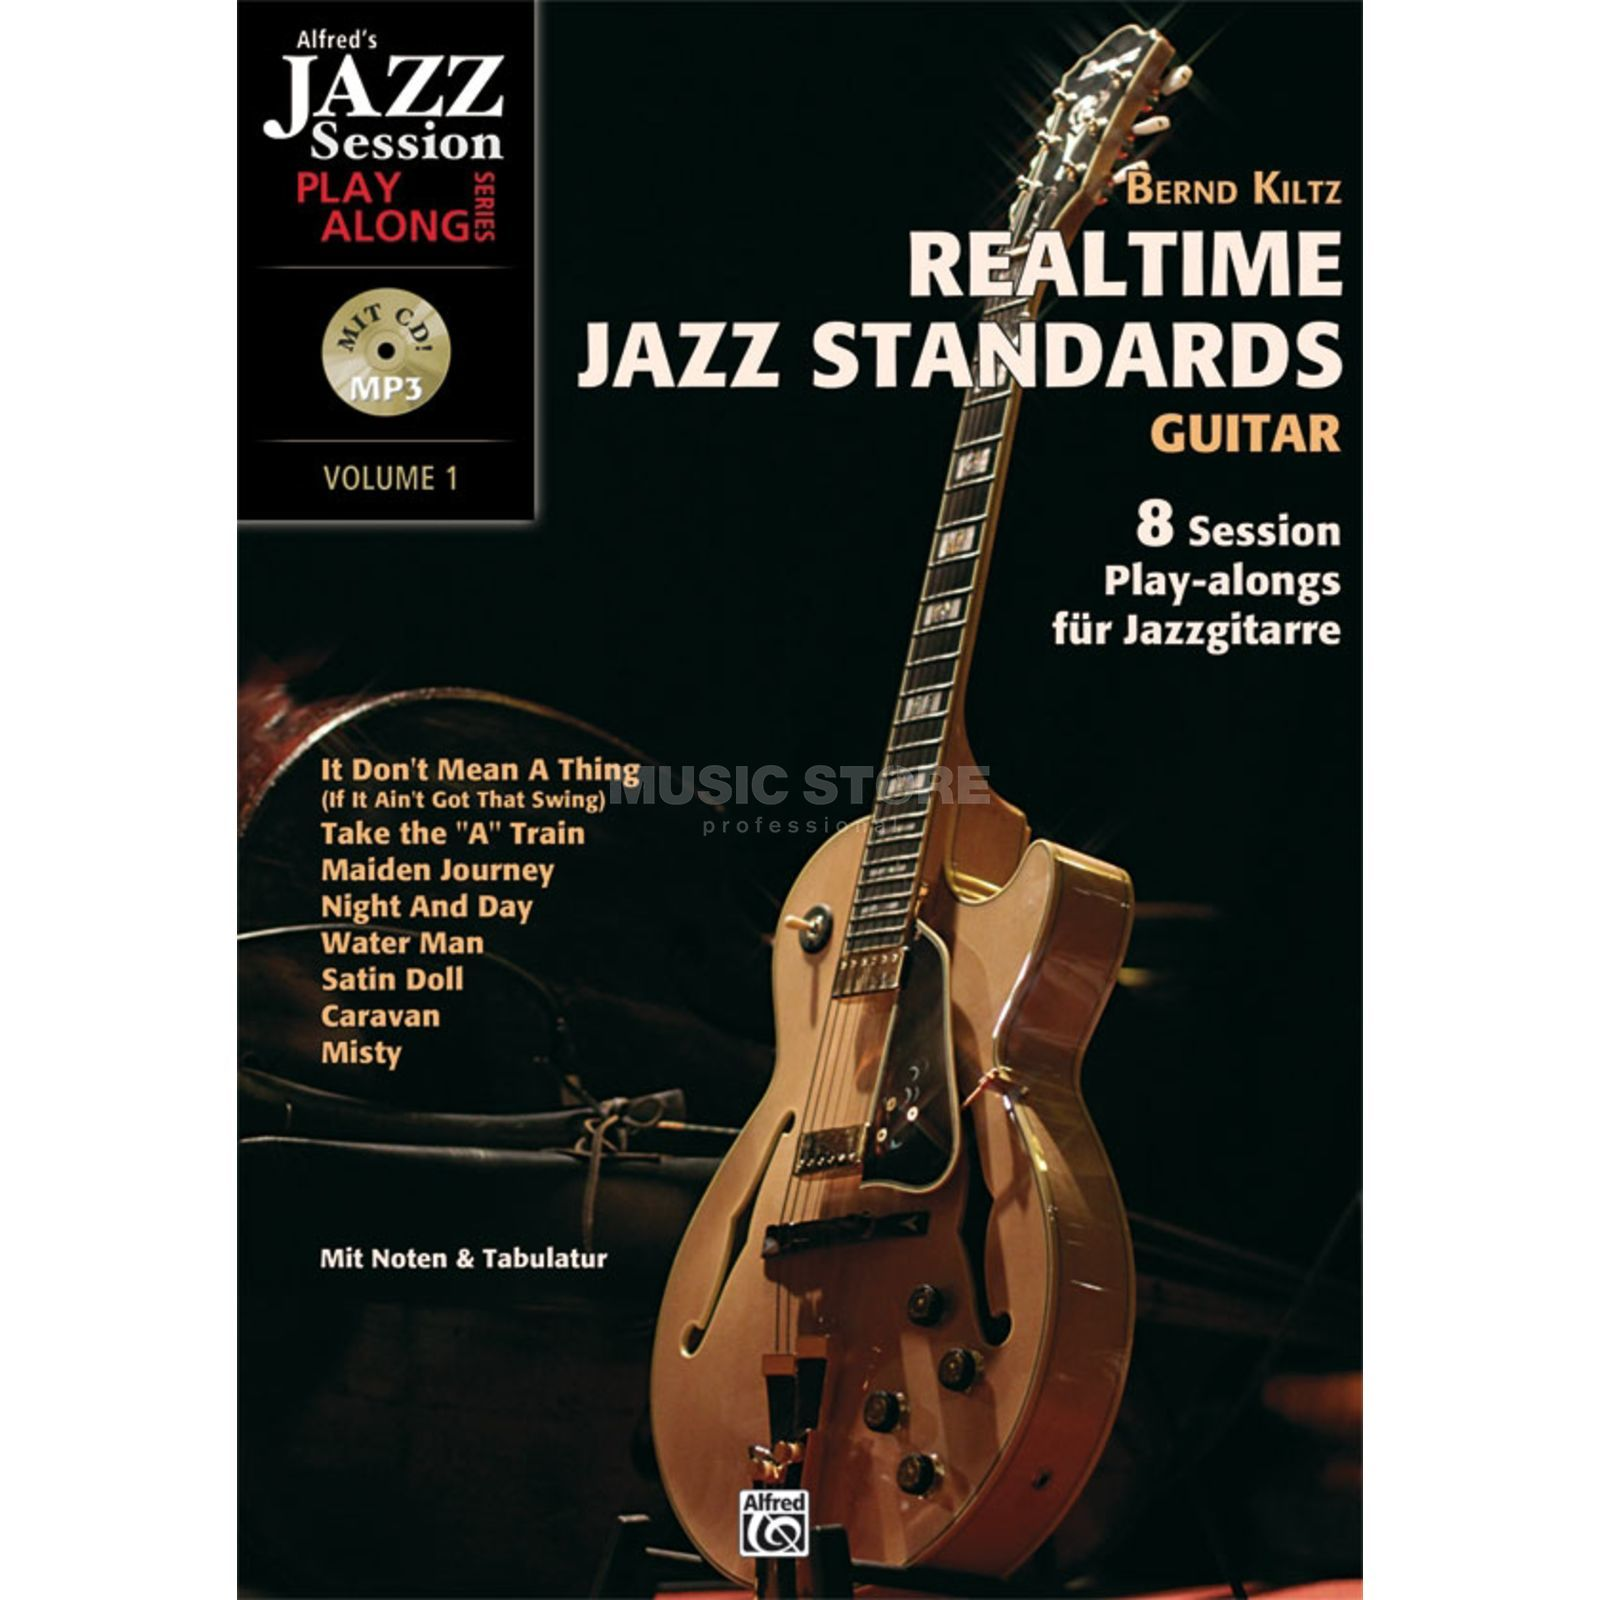 Alfred Music Realtime Jazz Standards - Guitar Produktbild